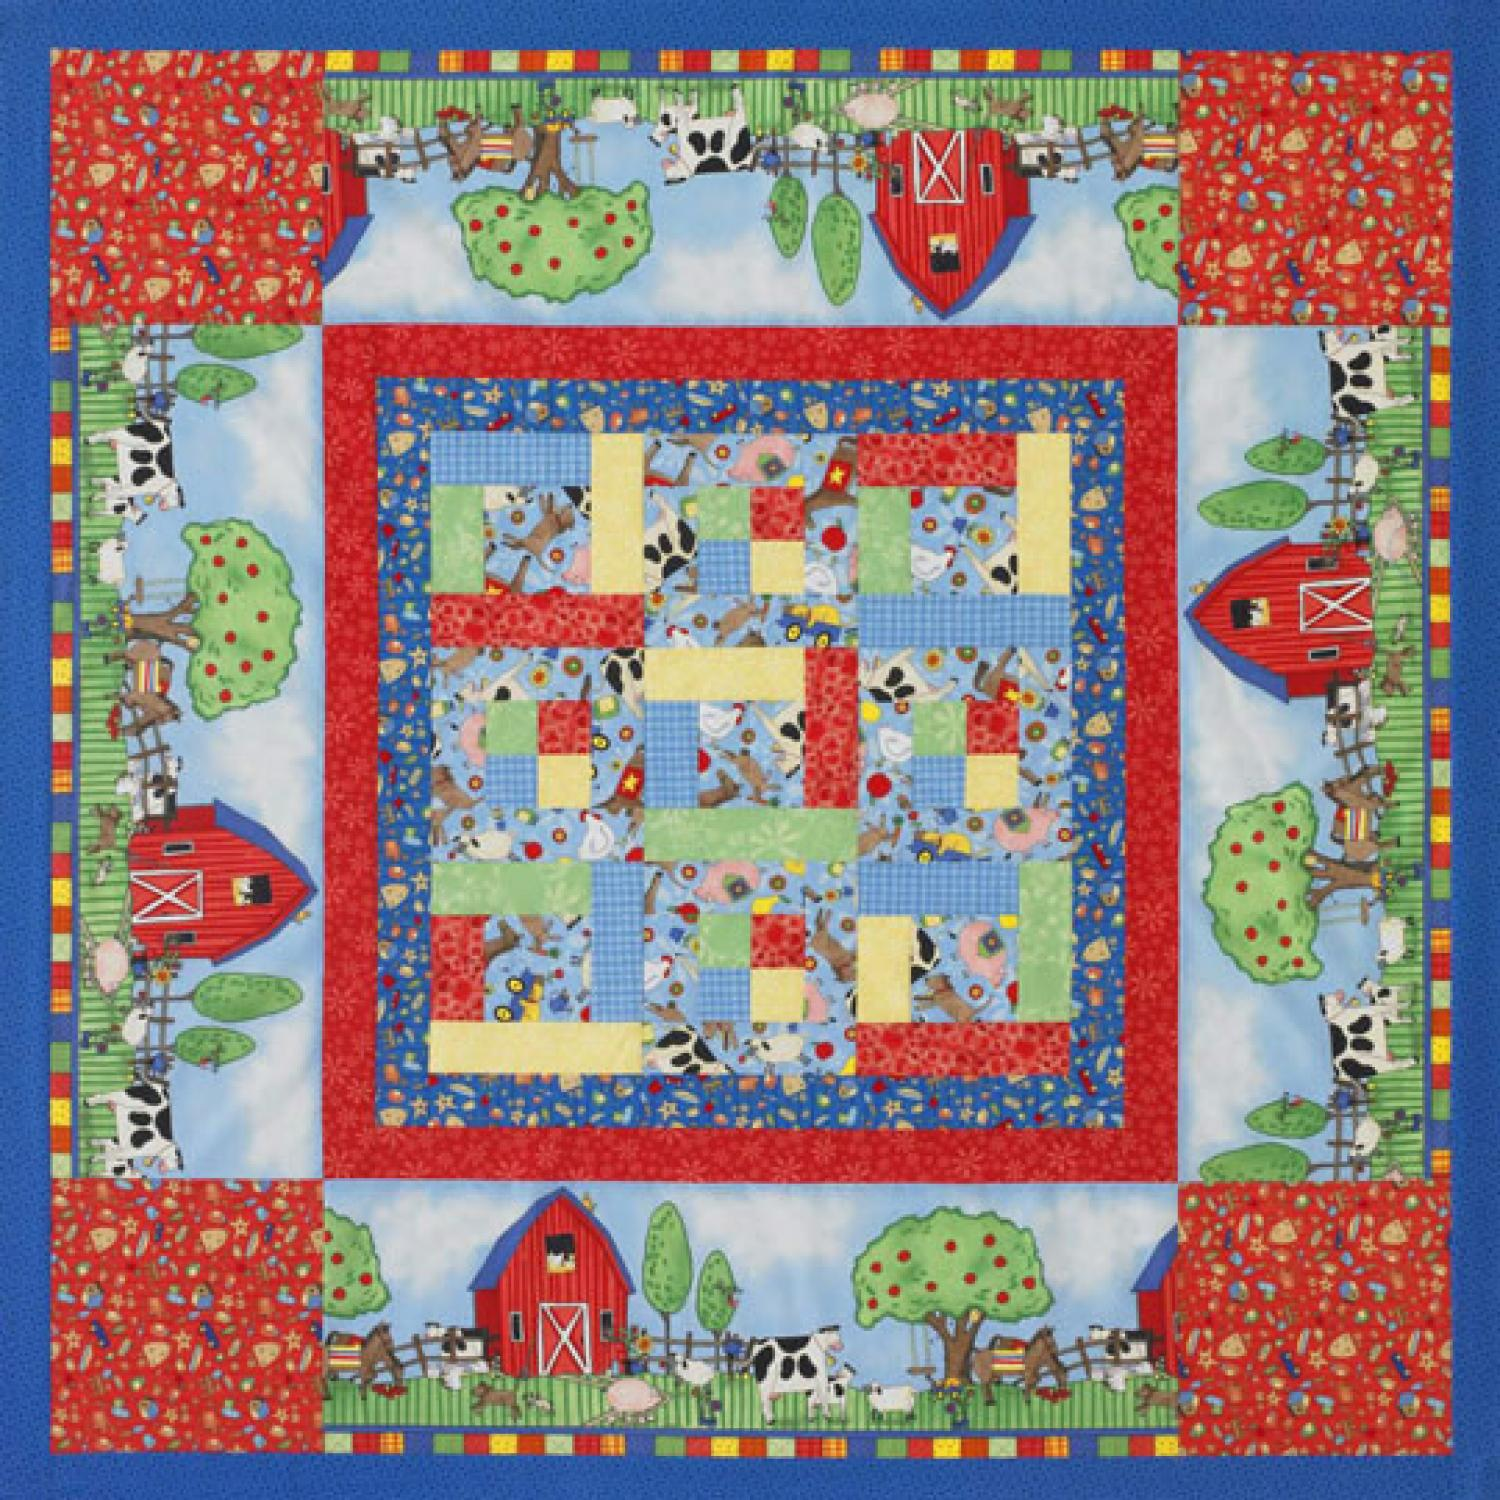 Kid's Quilted Play Mat | AllPeopleQuilt.com : quilted play mat baby - Adamdwight.com